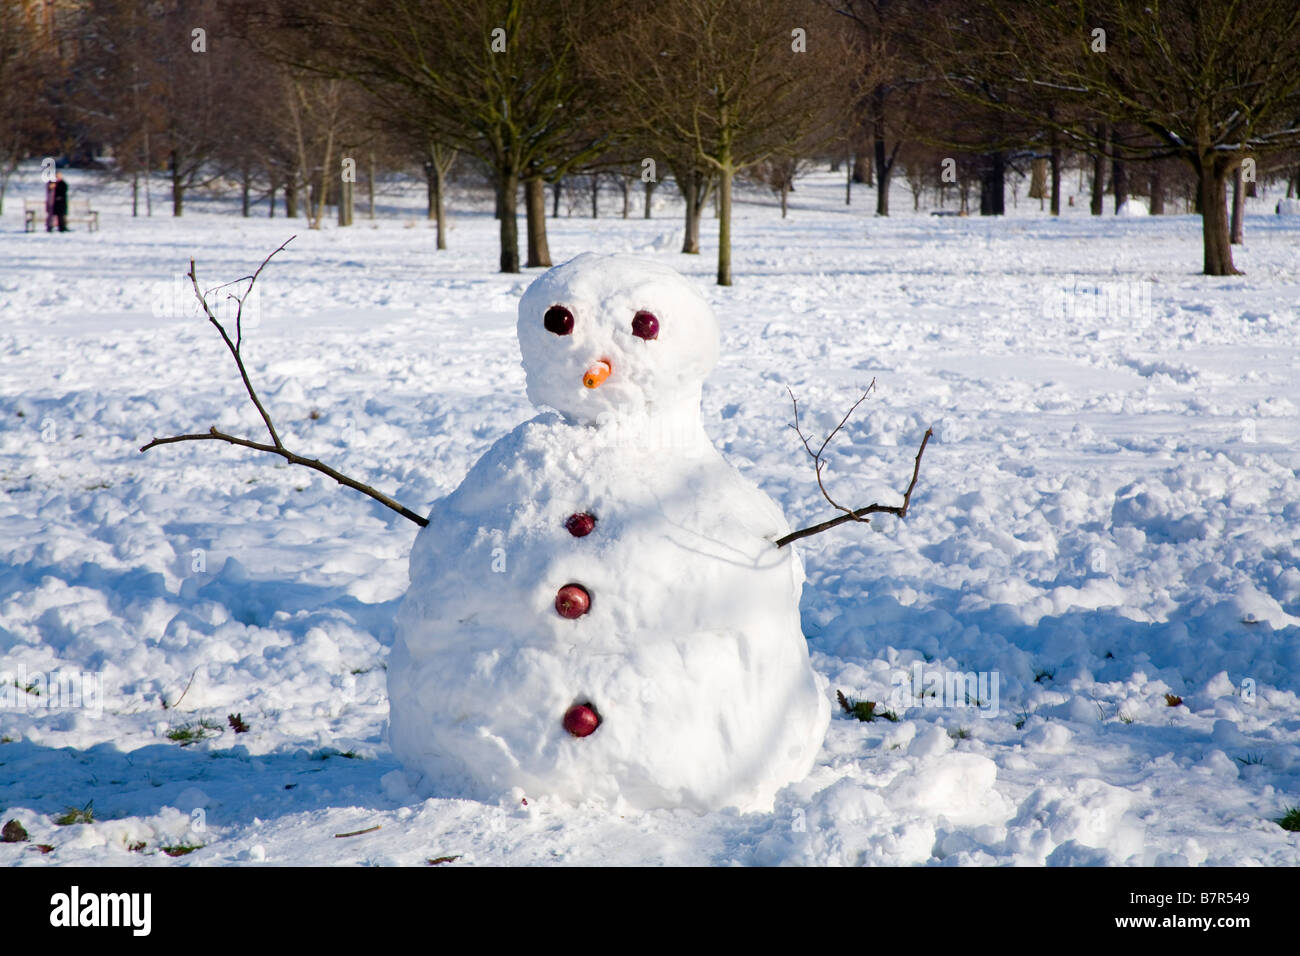 Snowman in Hyde Park London - Stock Image